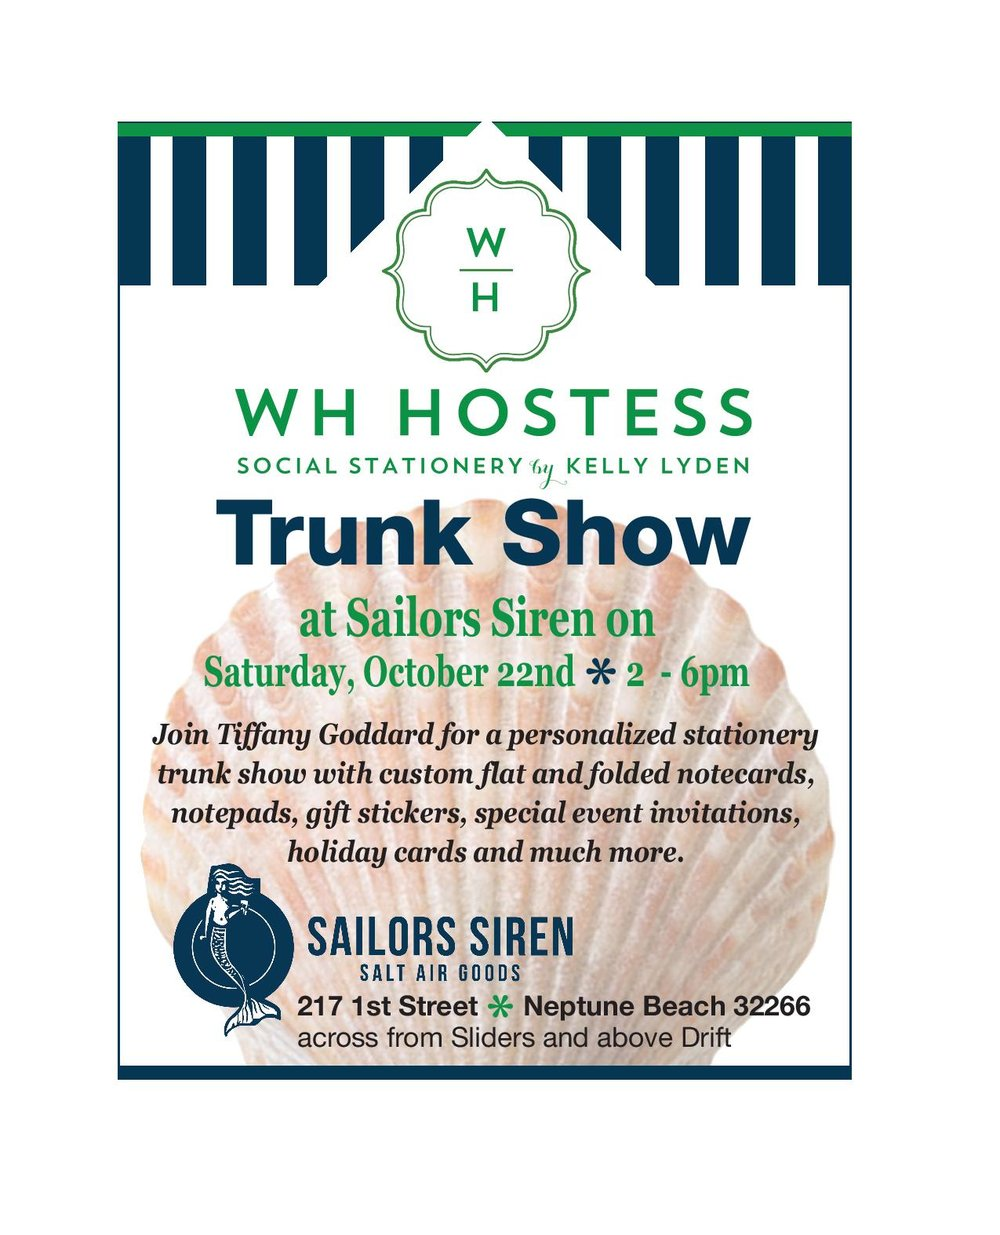 Stationary Trunk Show at Sailors Siren